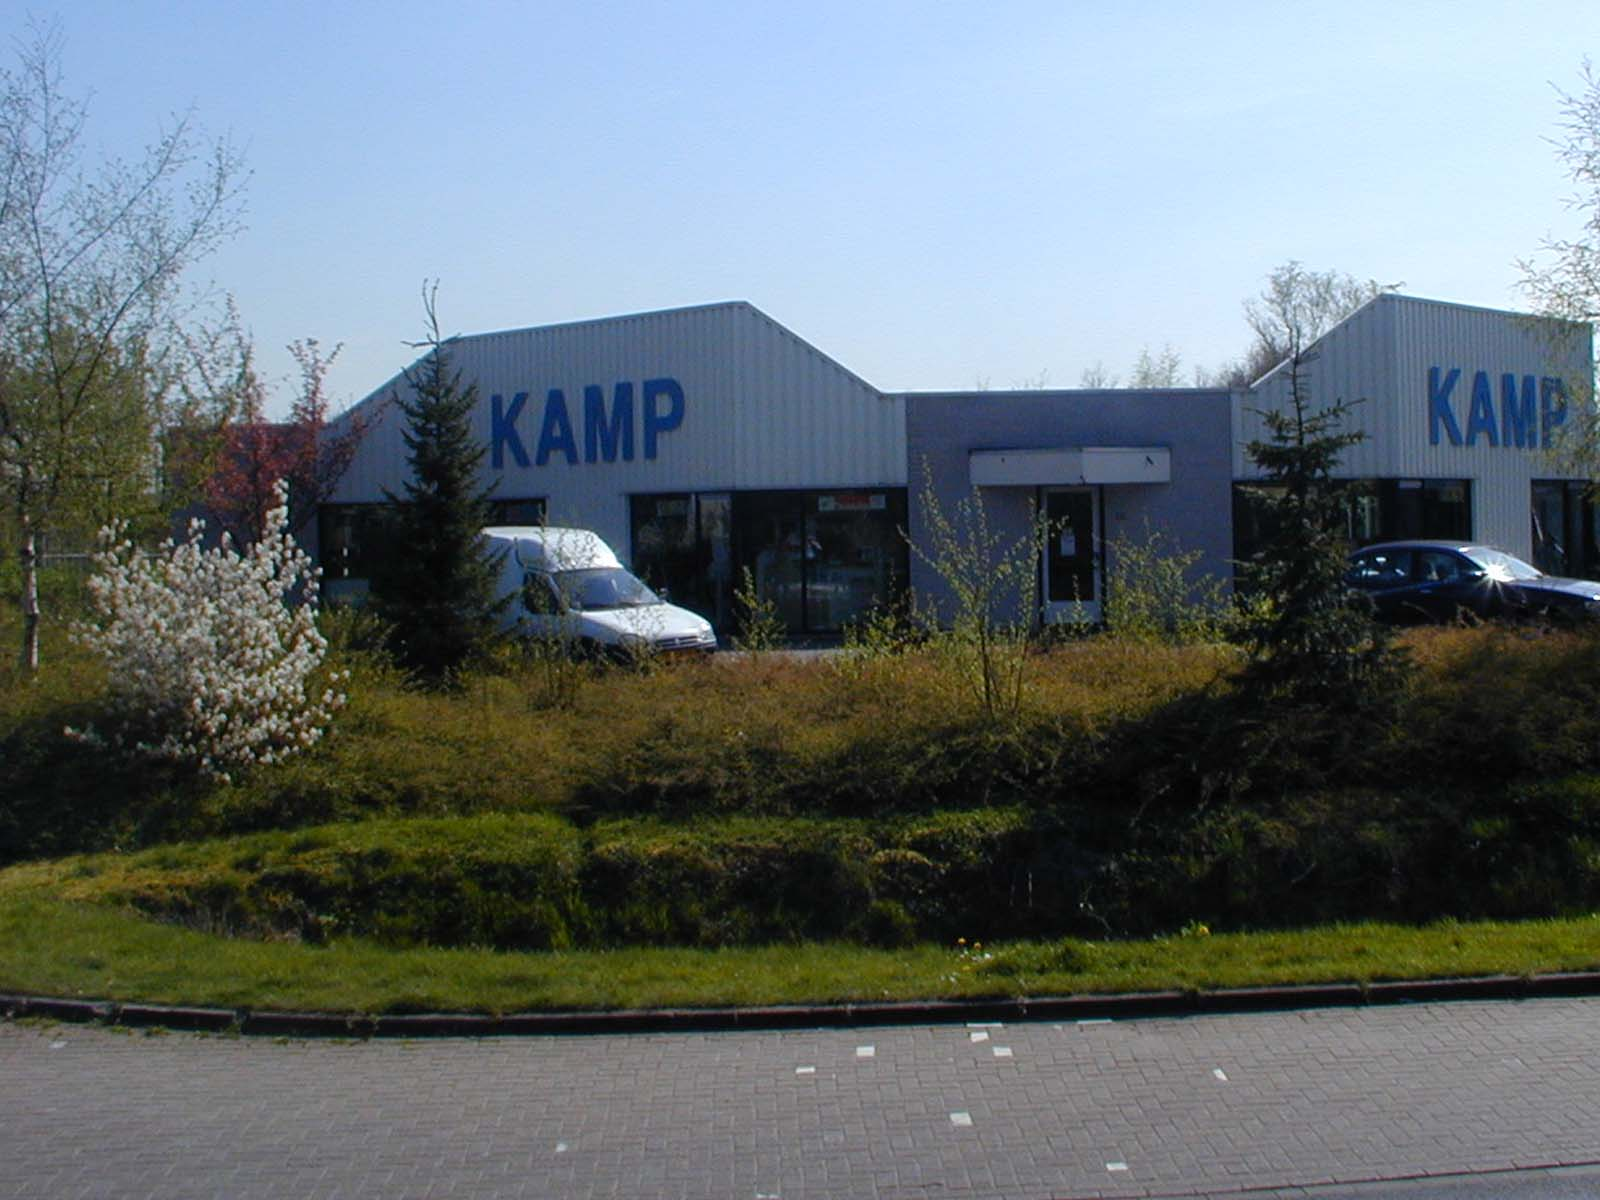 kamp machinetechniek